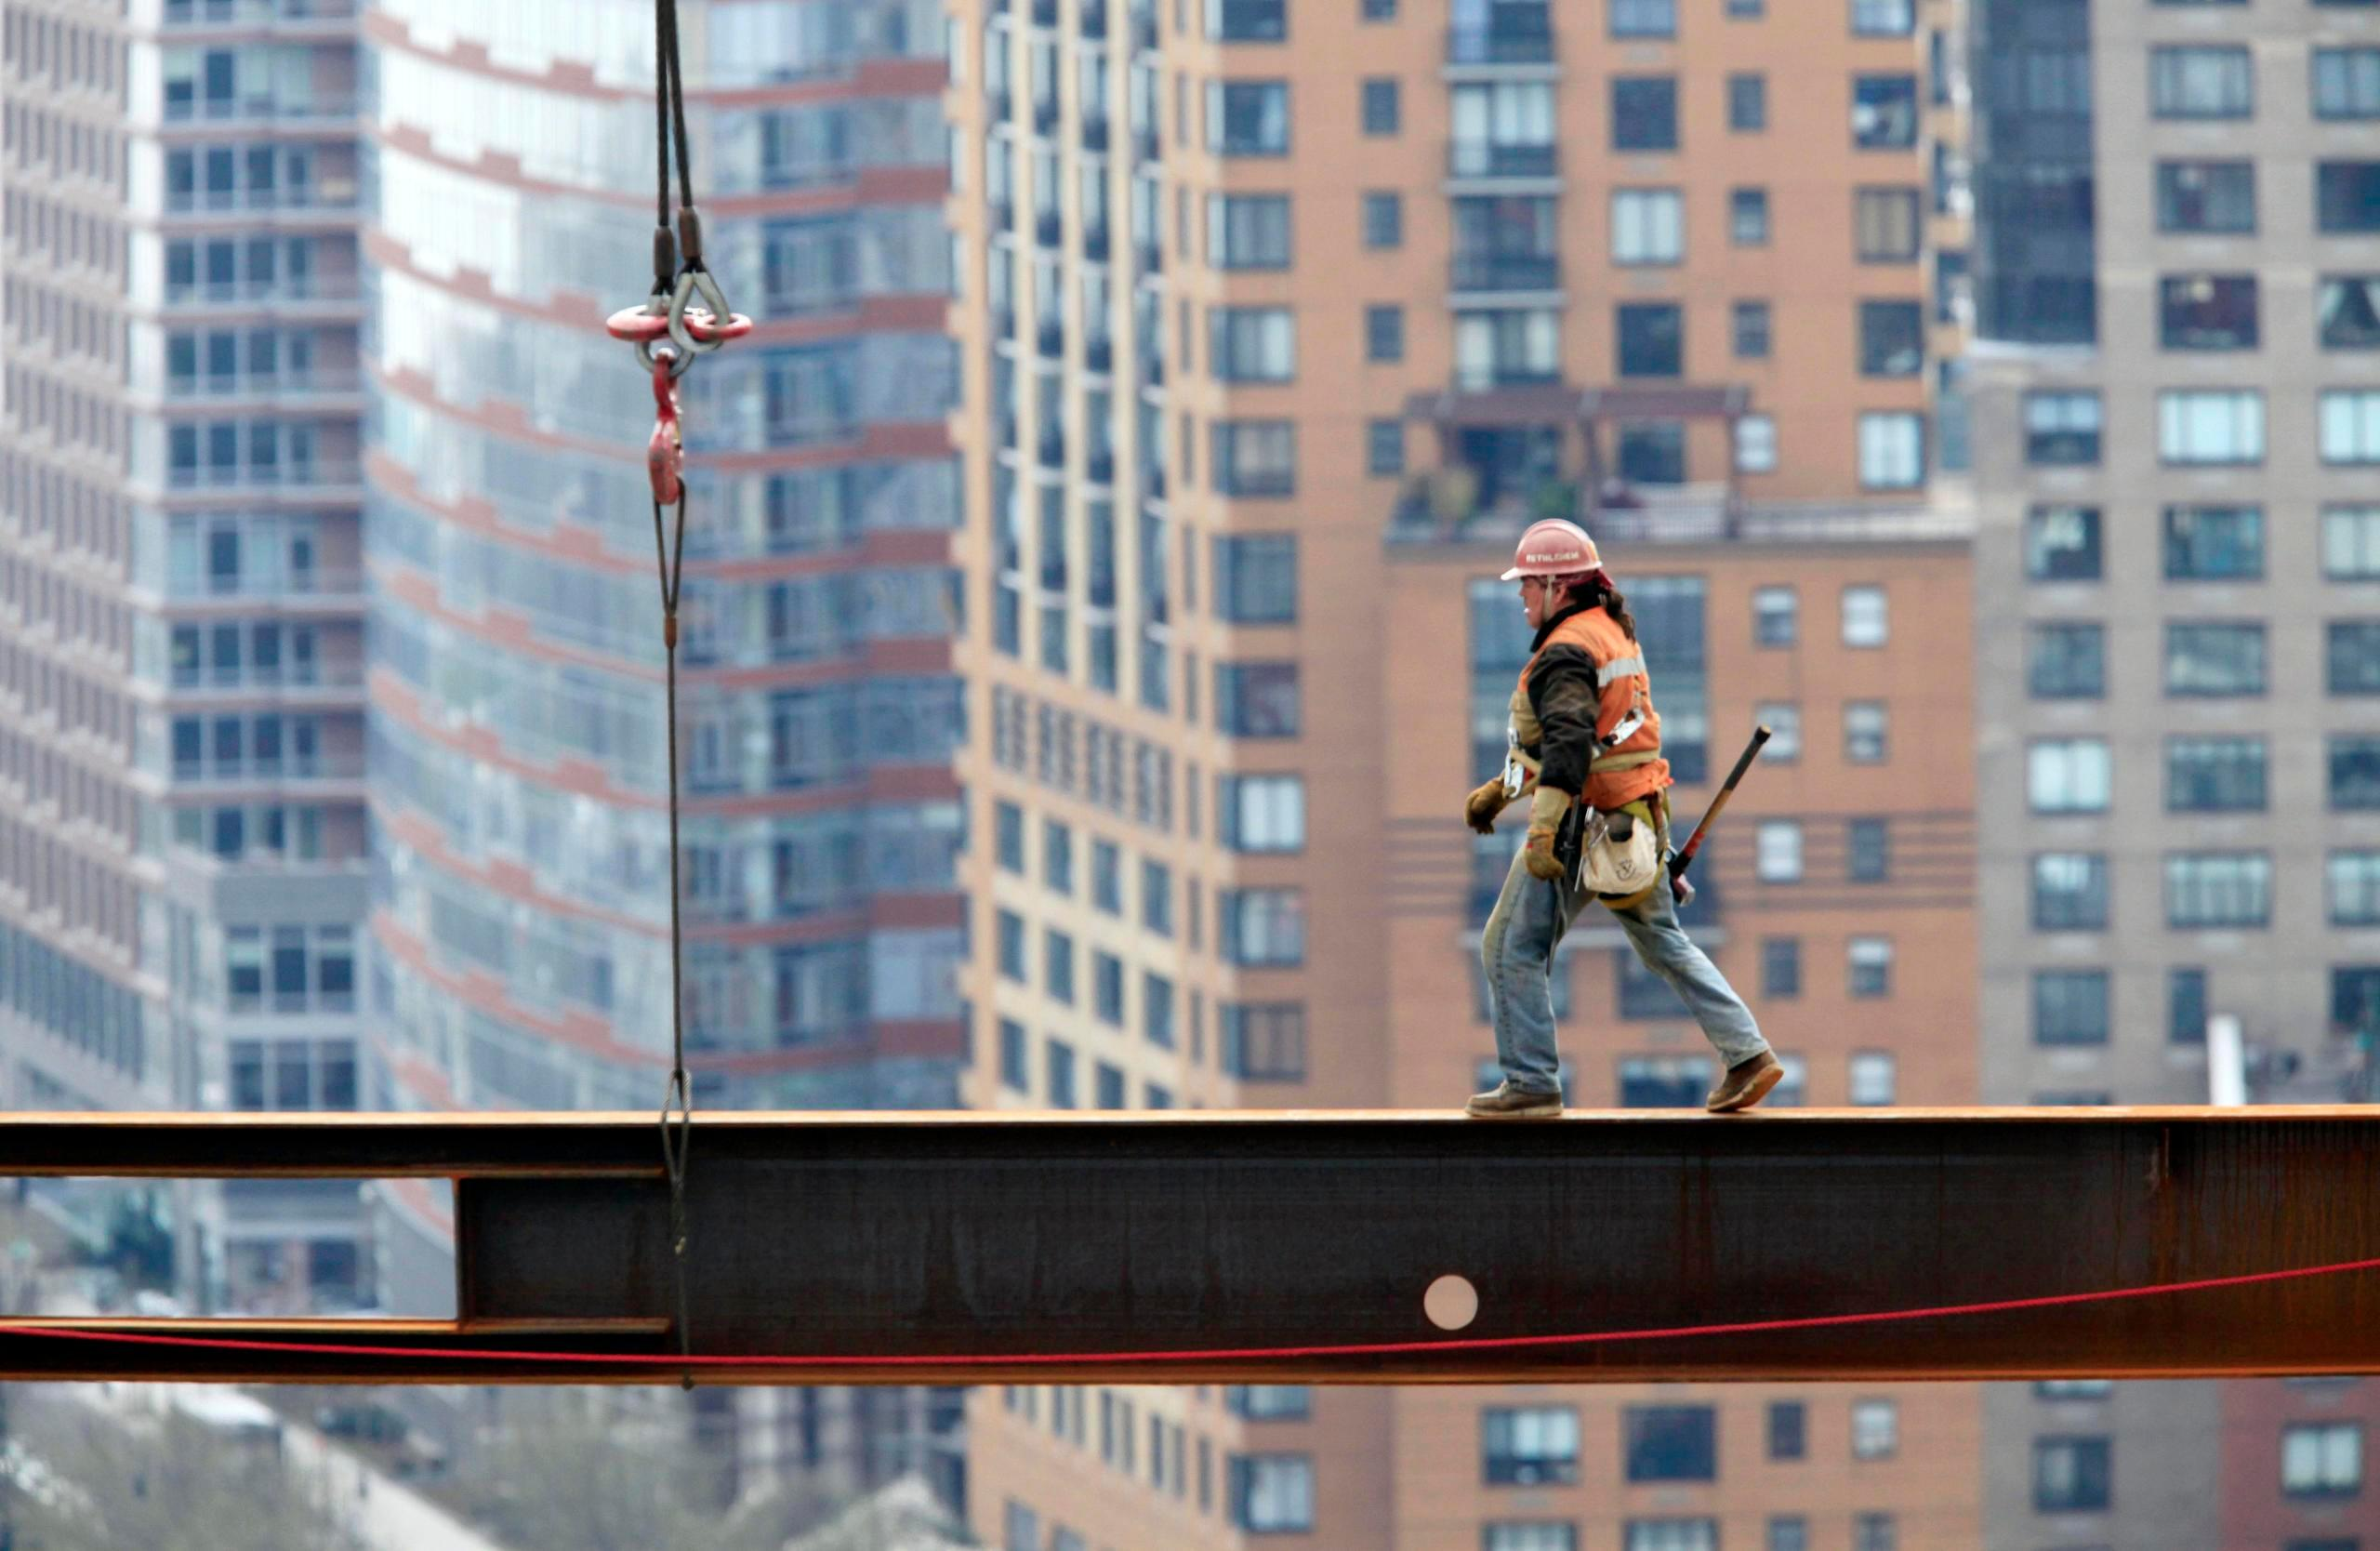 Construction Workers (Photography) Posters for sale at m Ironworkers on beam photo